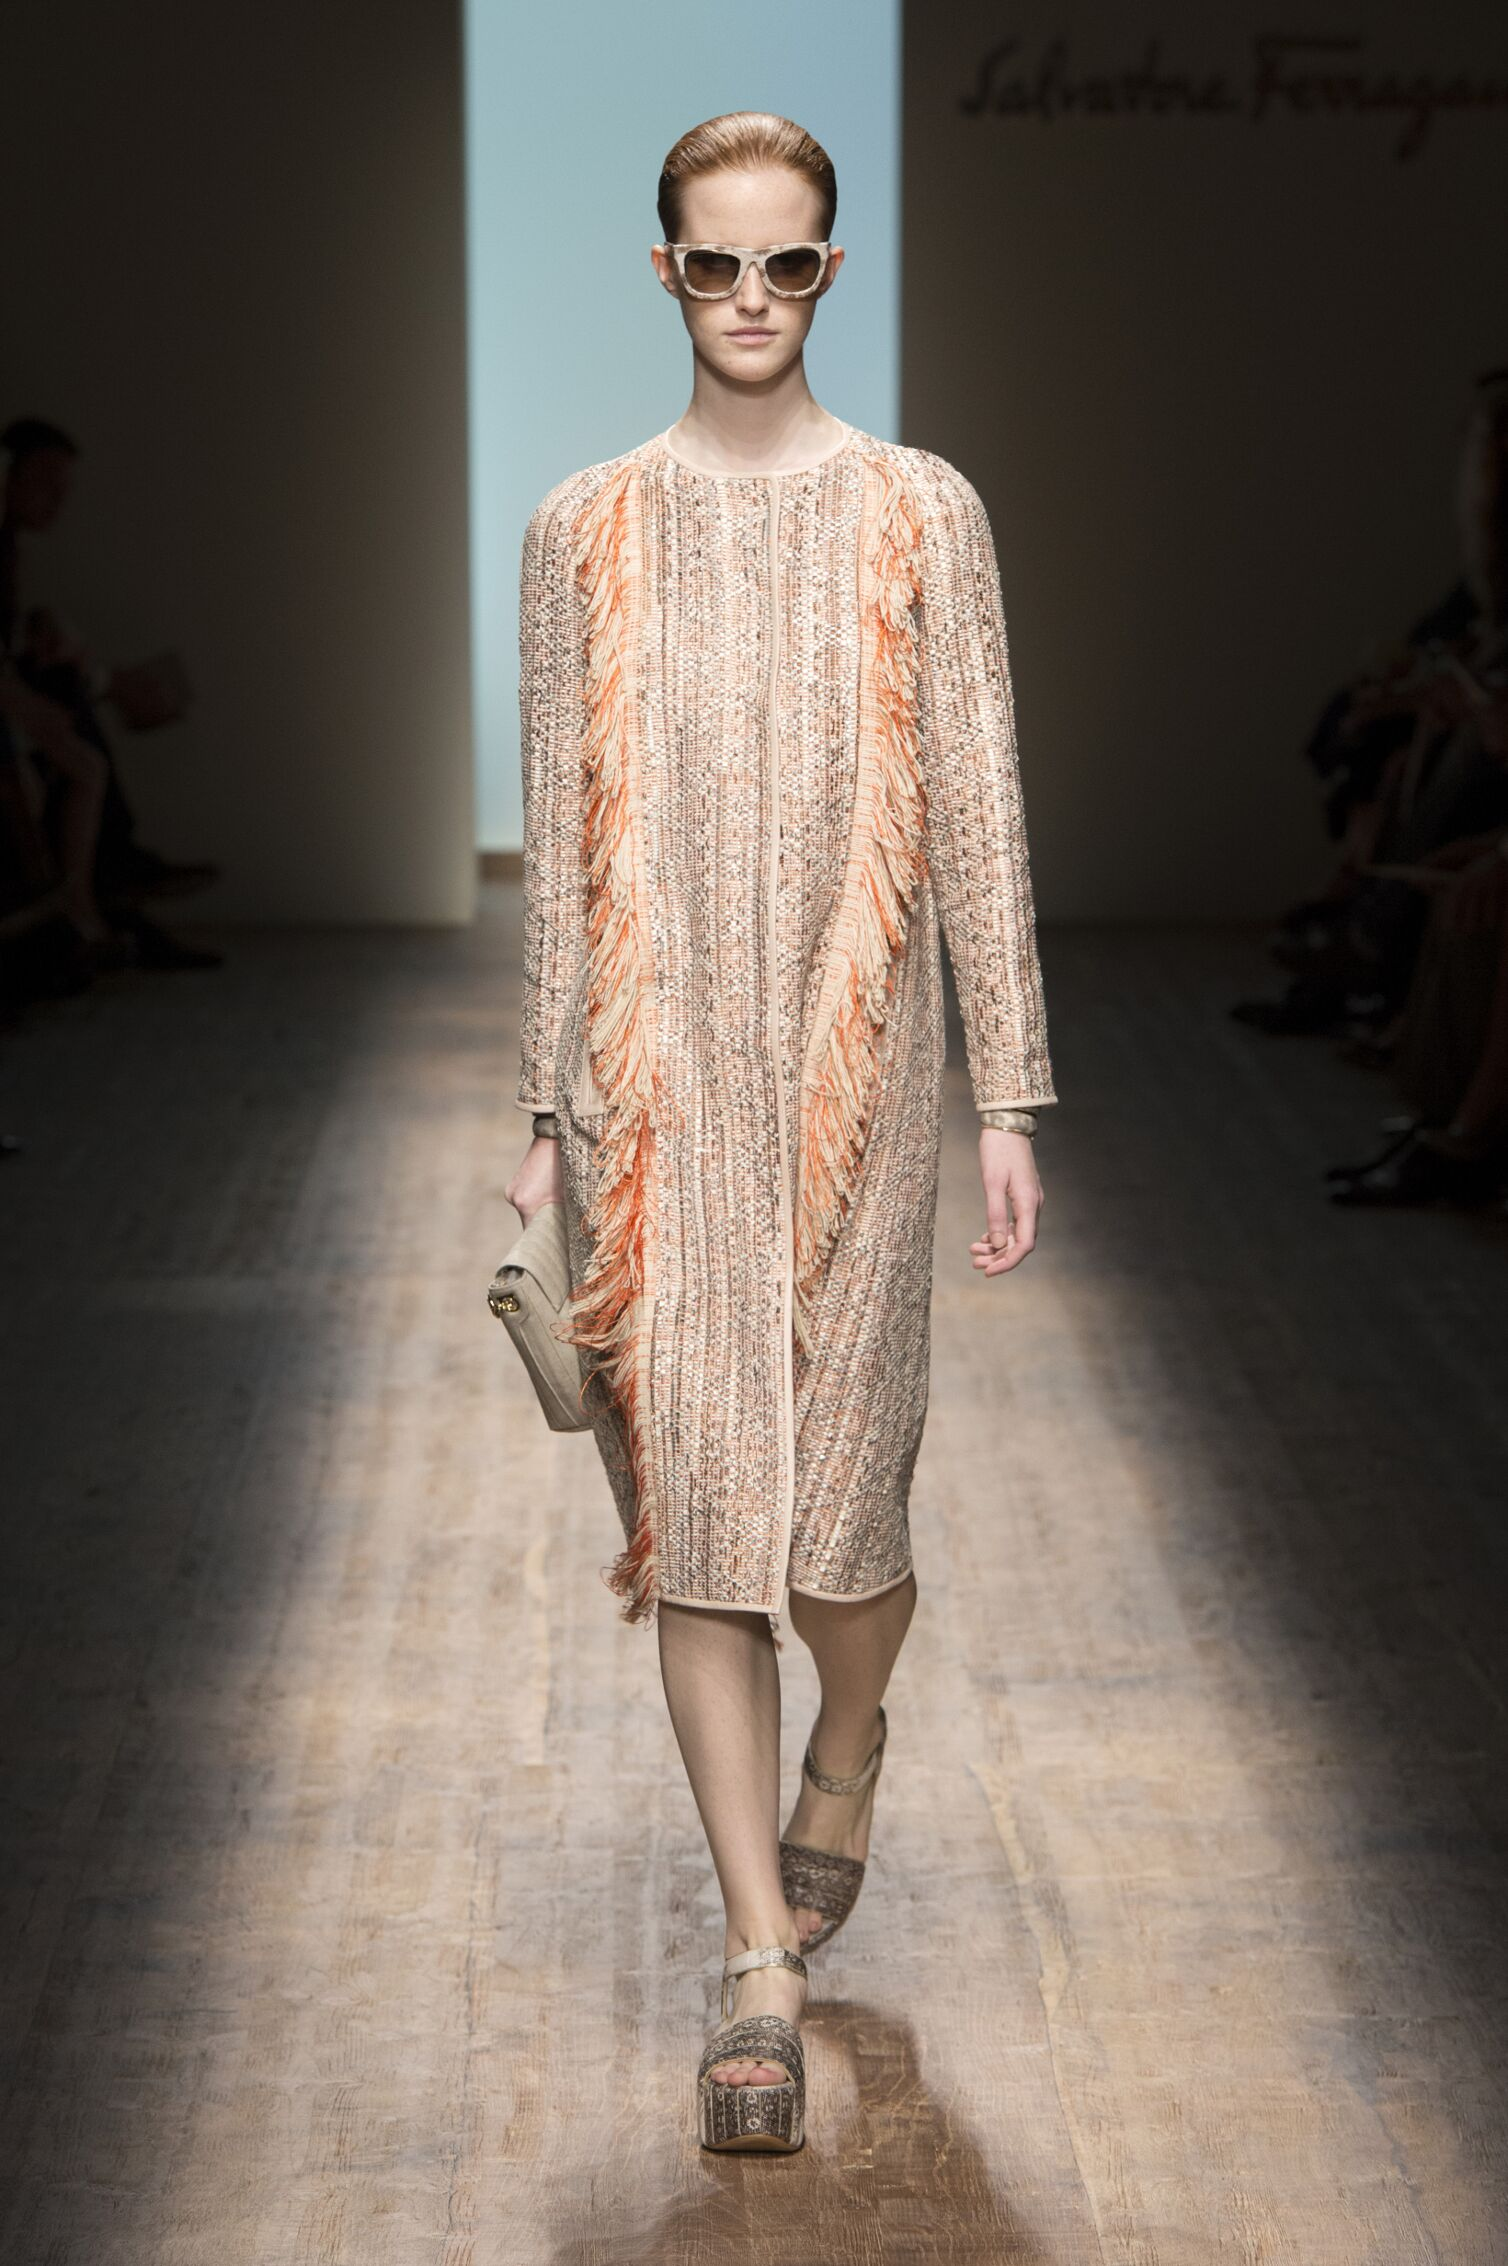 Runway Salvatore Ferragamo Spring Summer 2015 Women's Collection Milan Fashion Week